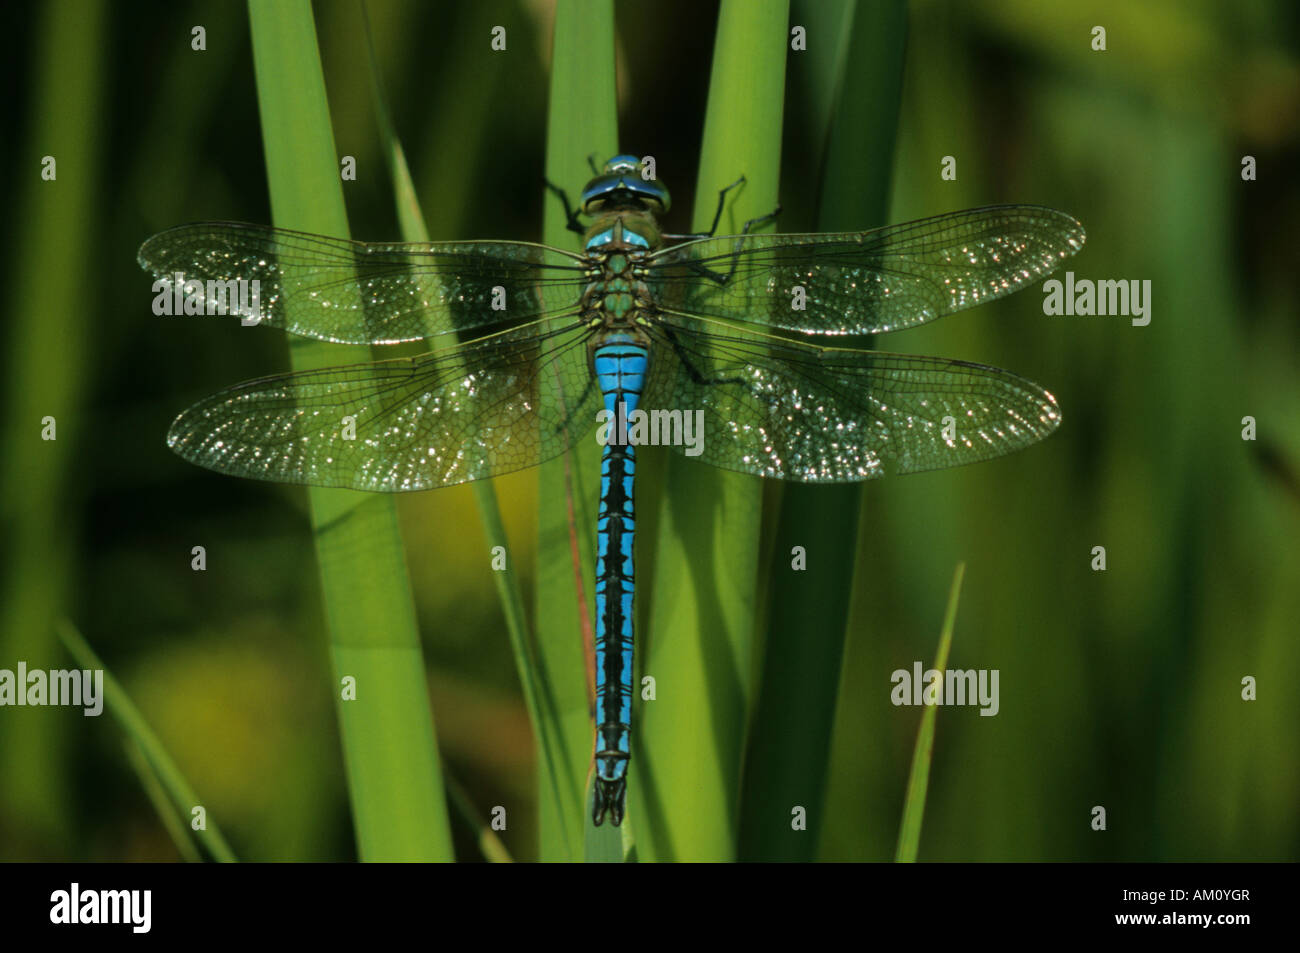 Emperor Dragonfly, Anax imperator - Stock Image